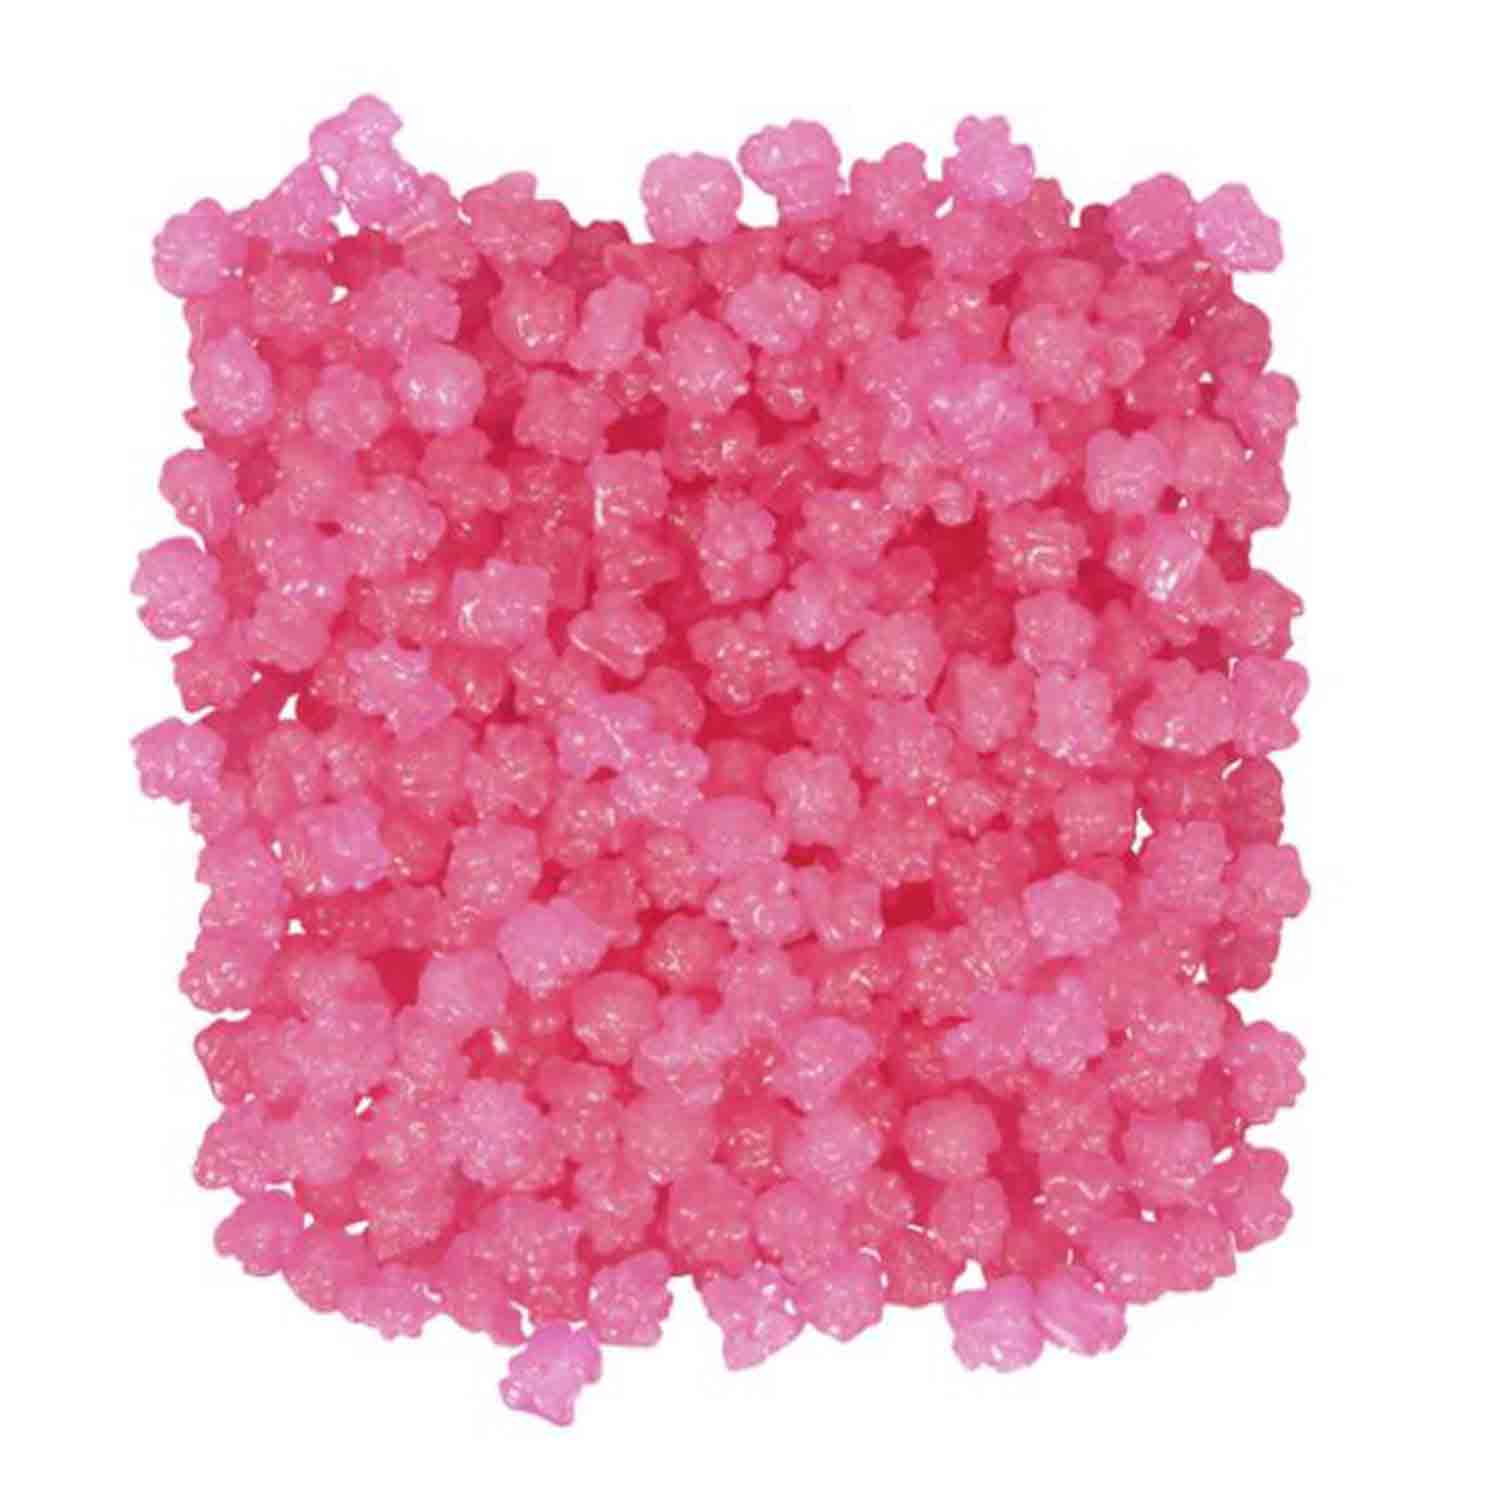 Pink Sugar Crystals